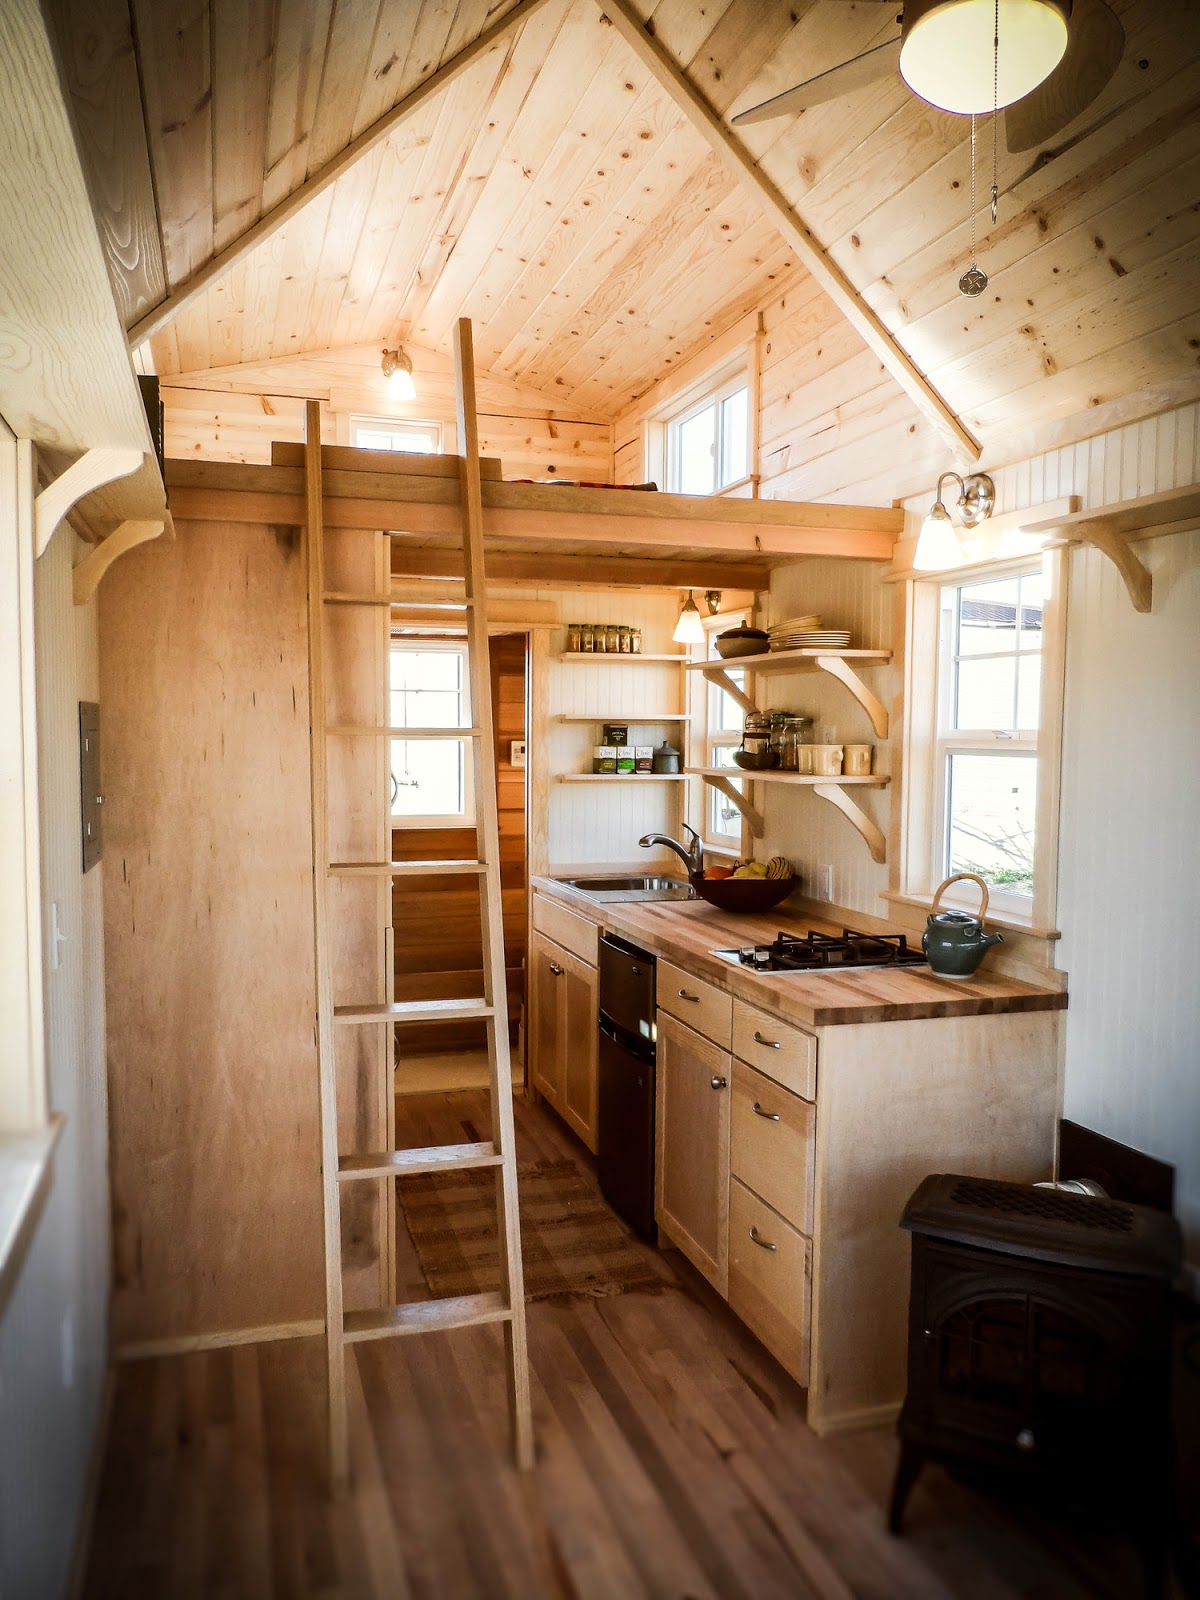 payette-truform-tiny-house-4 Mountain House Floorplans on mountain house layout, mountain house plans with porches, mountain house elevations,